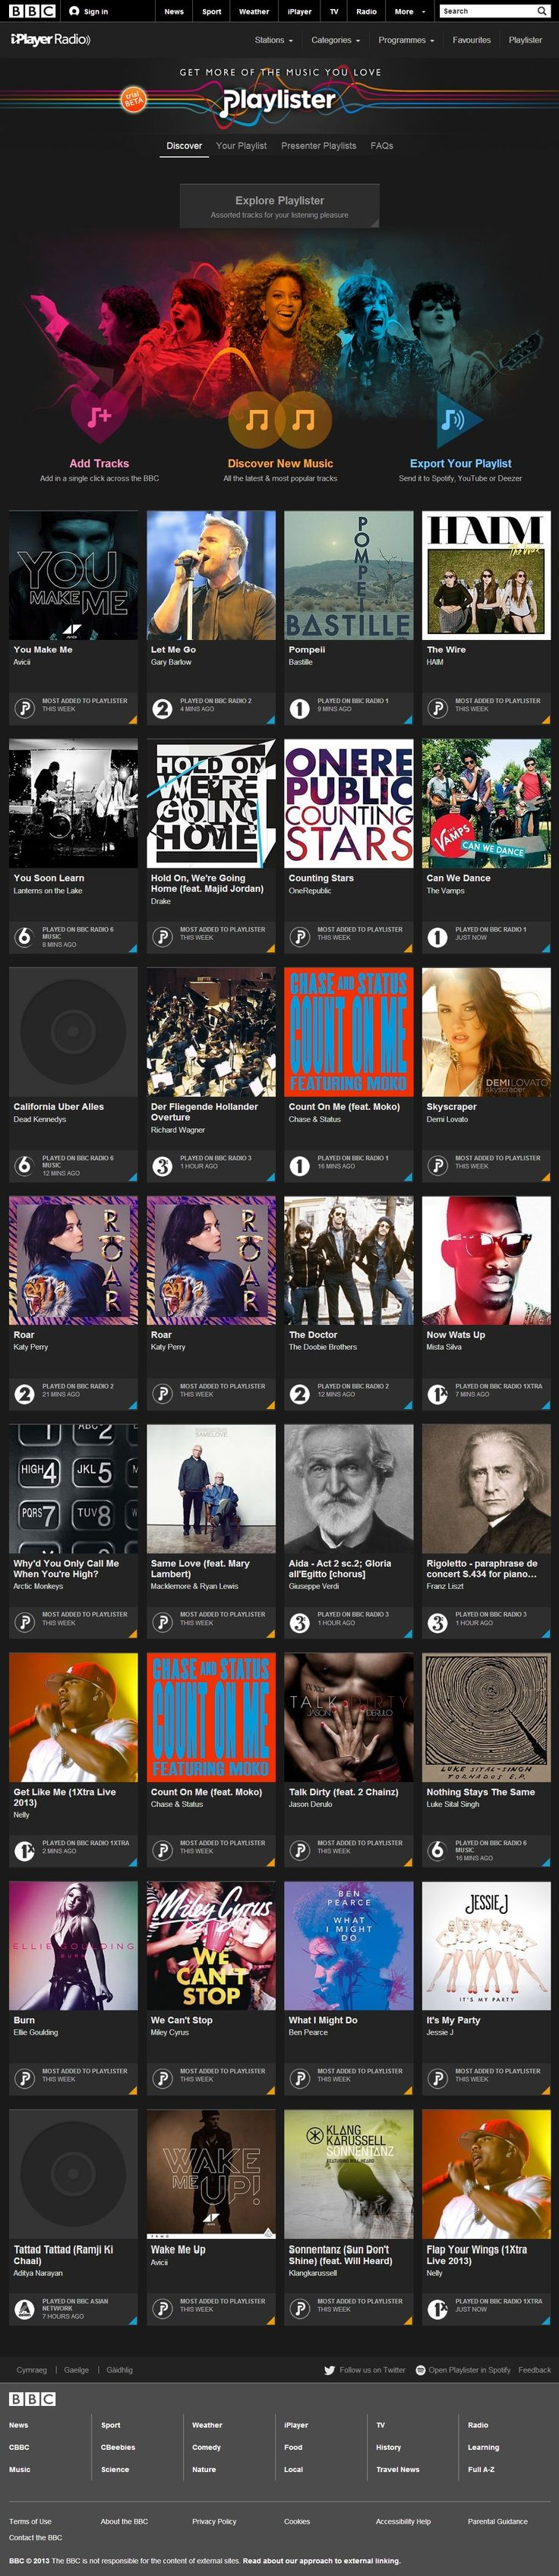 BBC Playlister just released a cards based UI for music playlists.